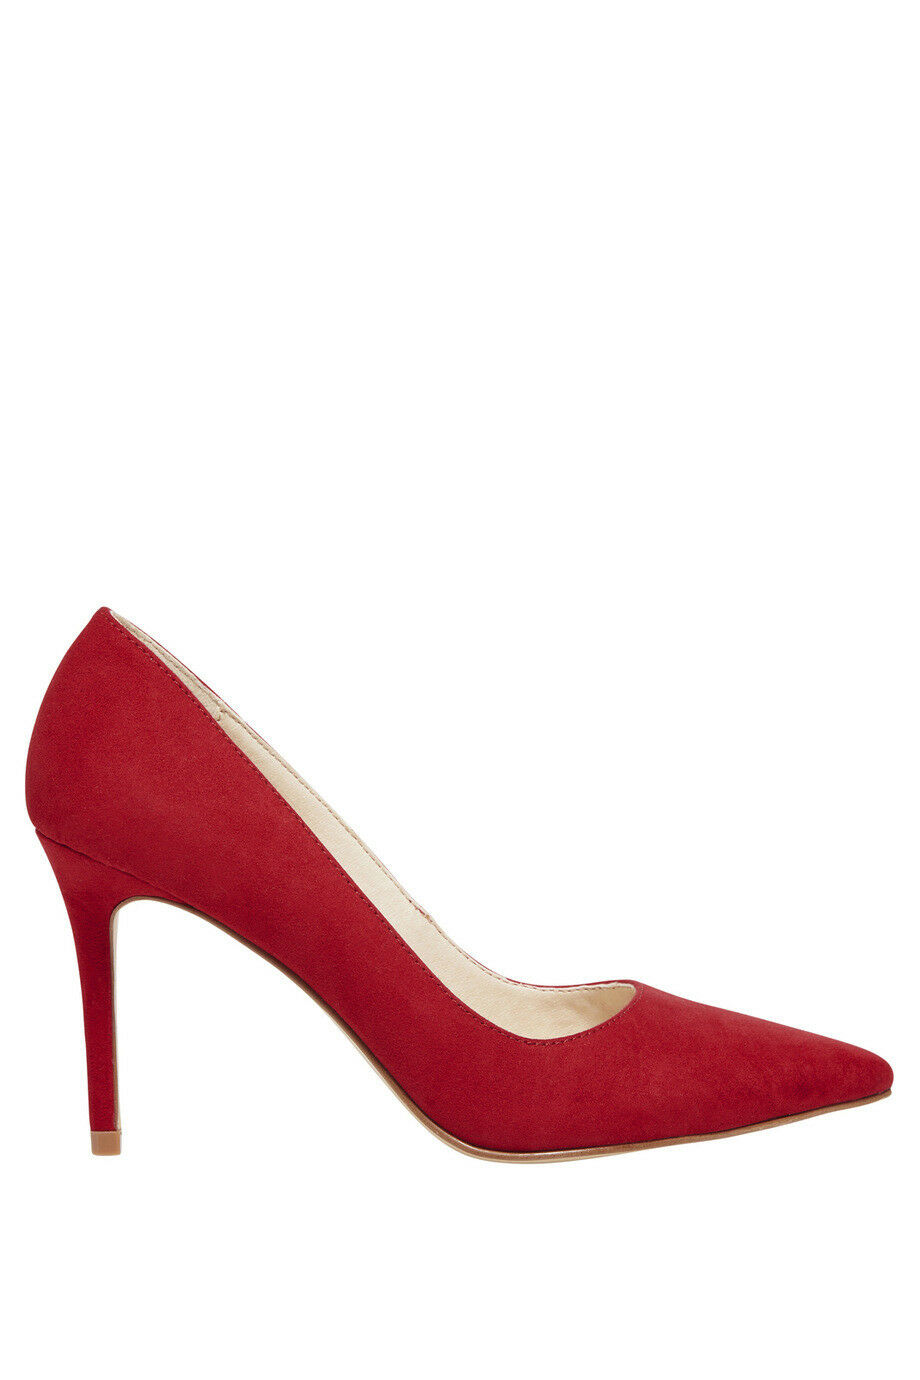 Gentlemen/Ladies NEW Lipstik Theadora Flame Red Pump Reasonable price luxurious Most practical